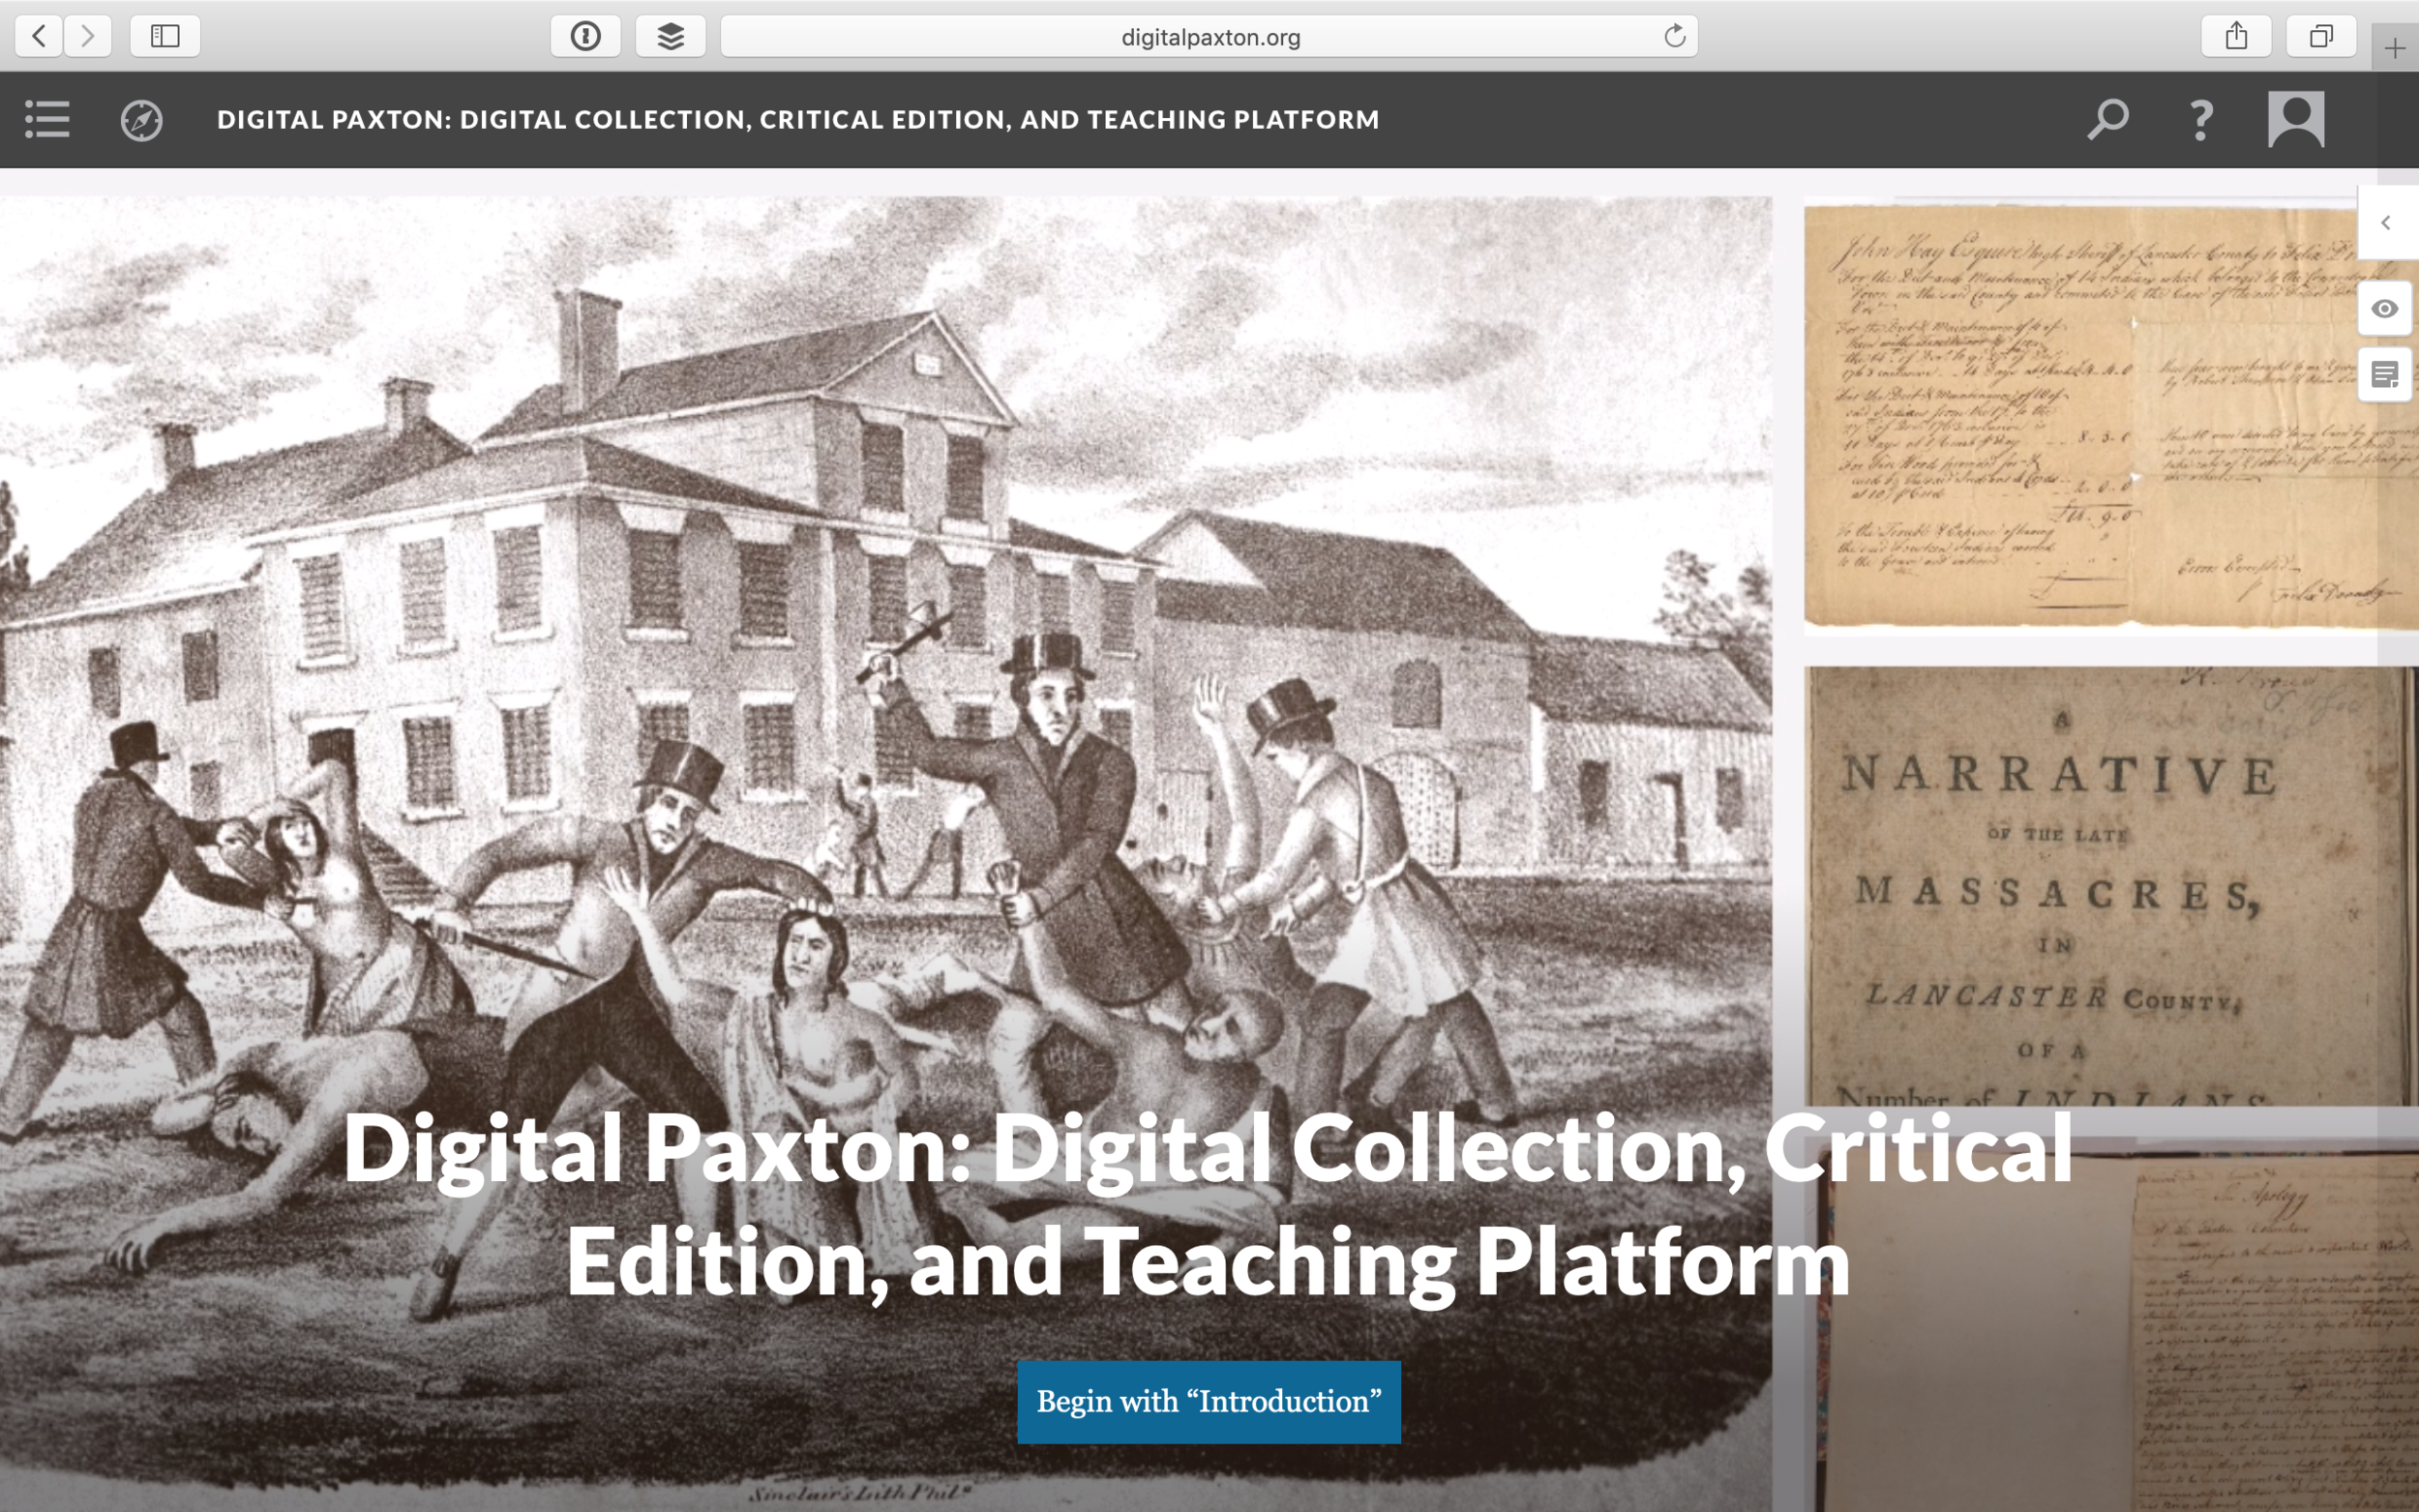 Digital Paxton: Digital Collection, Critical Edition, and Teaching Platform